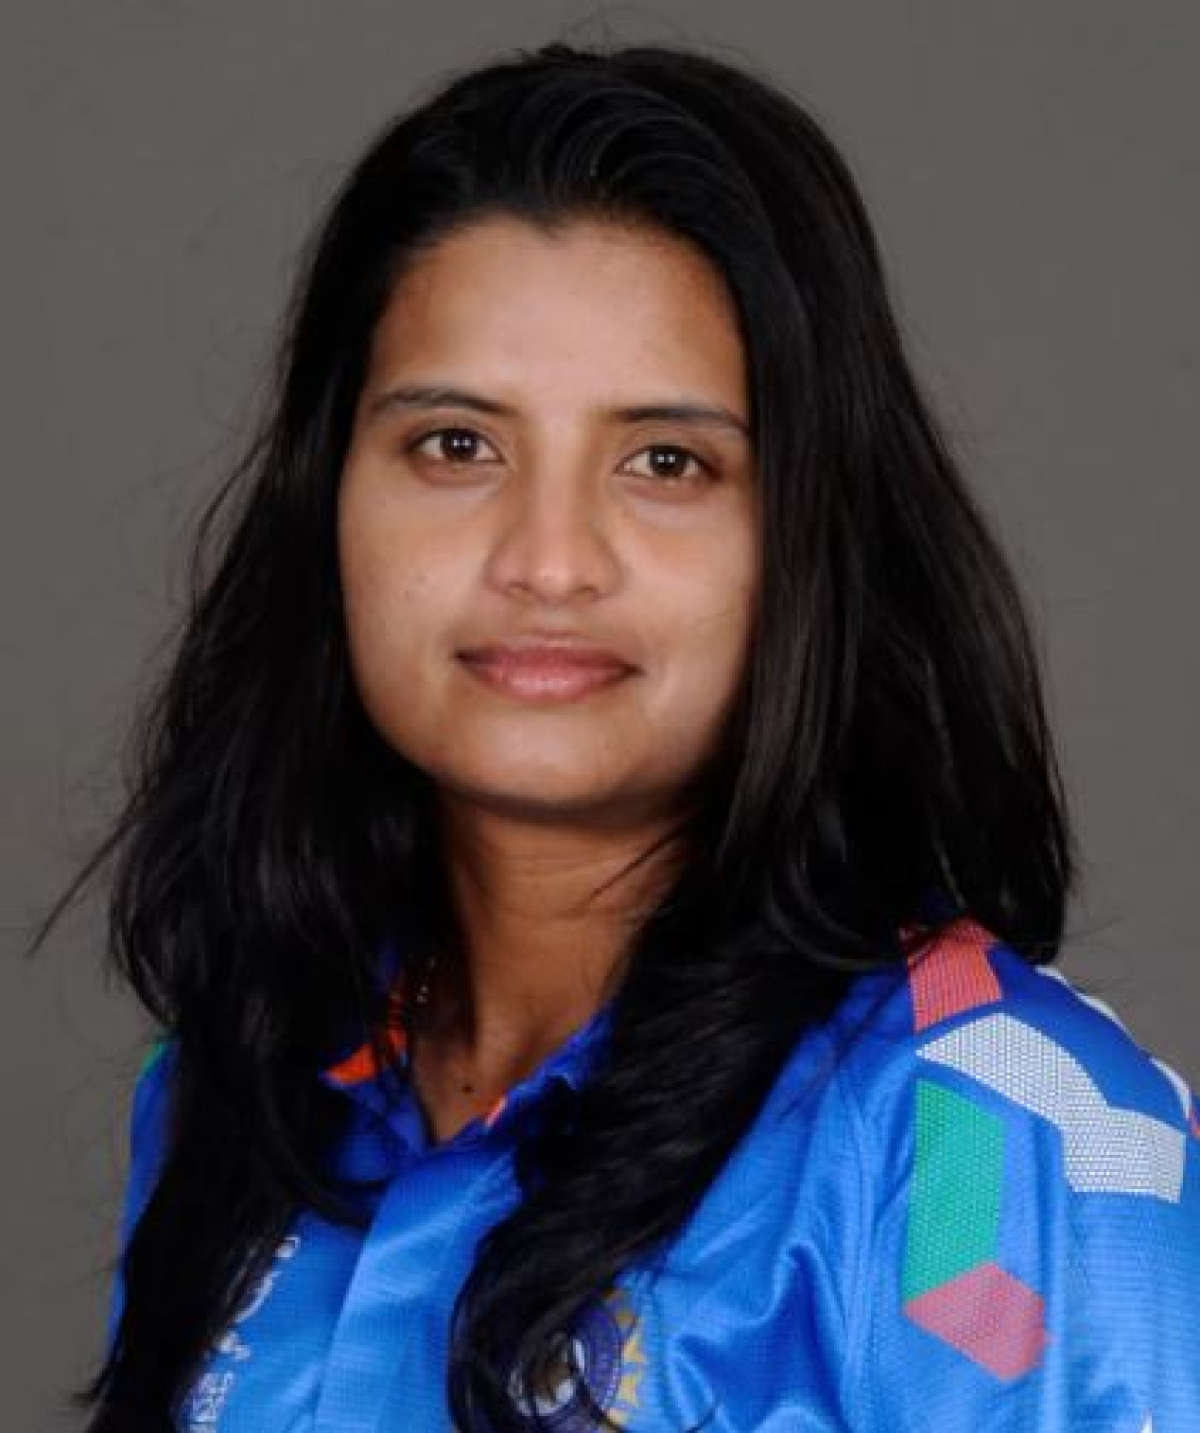 SK Sravathi Naidu is a former India and Hyderabad cricketer